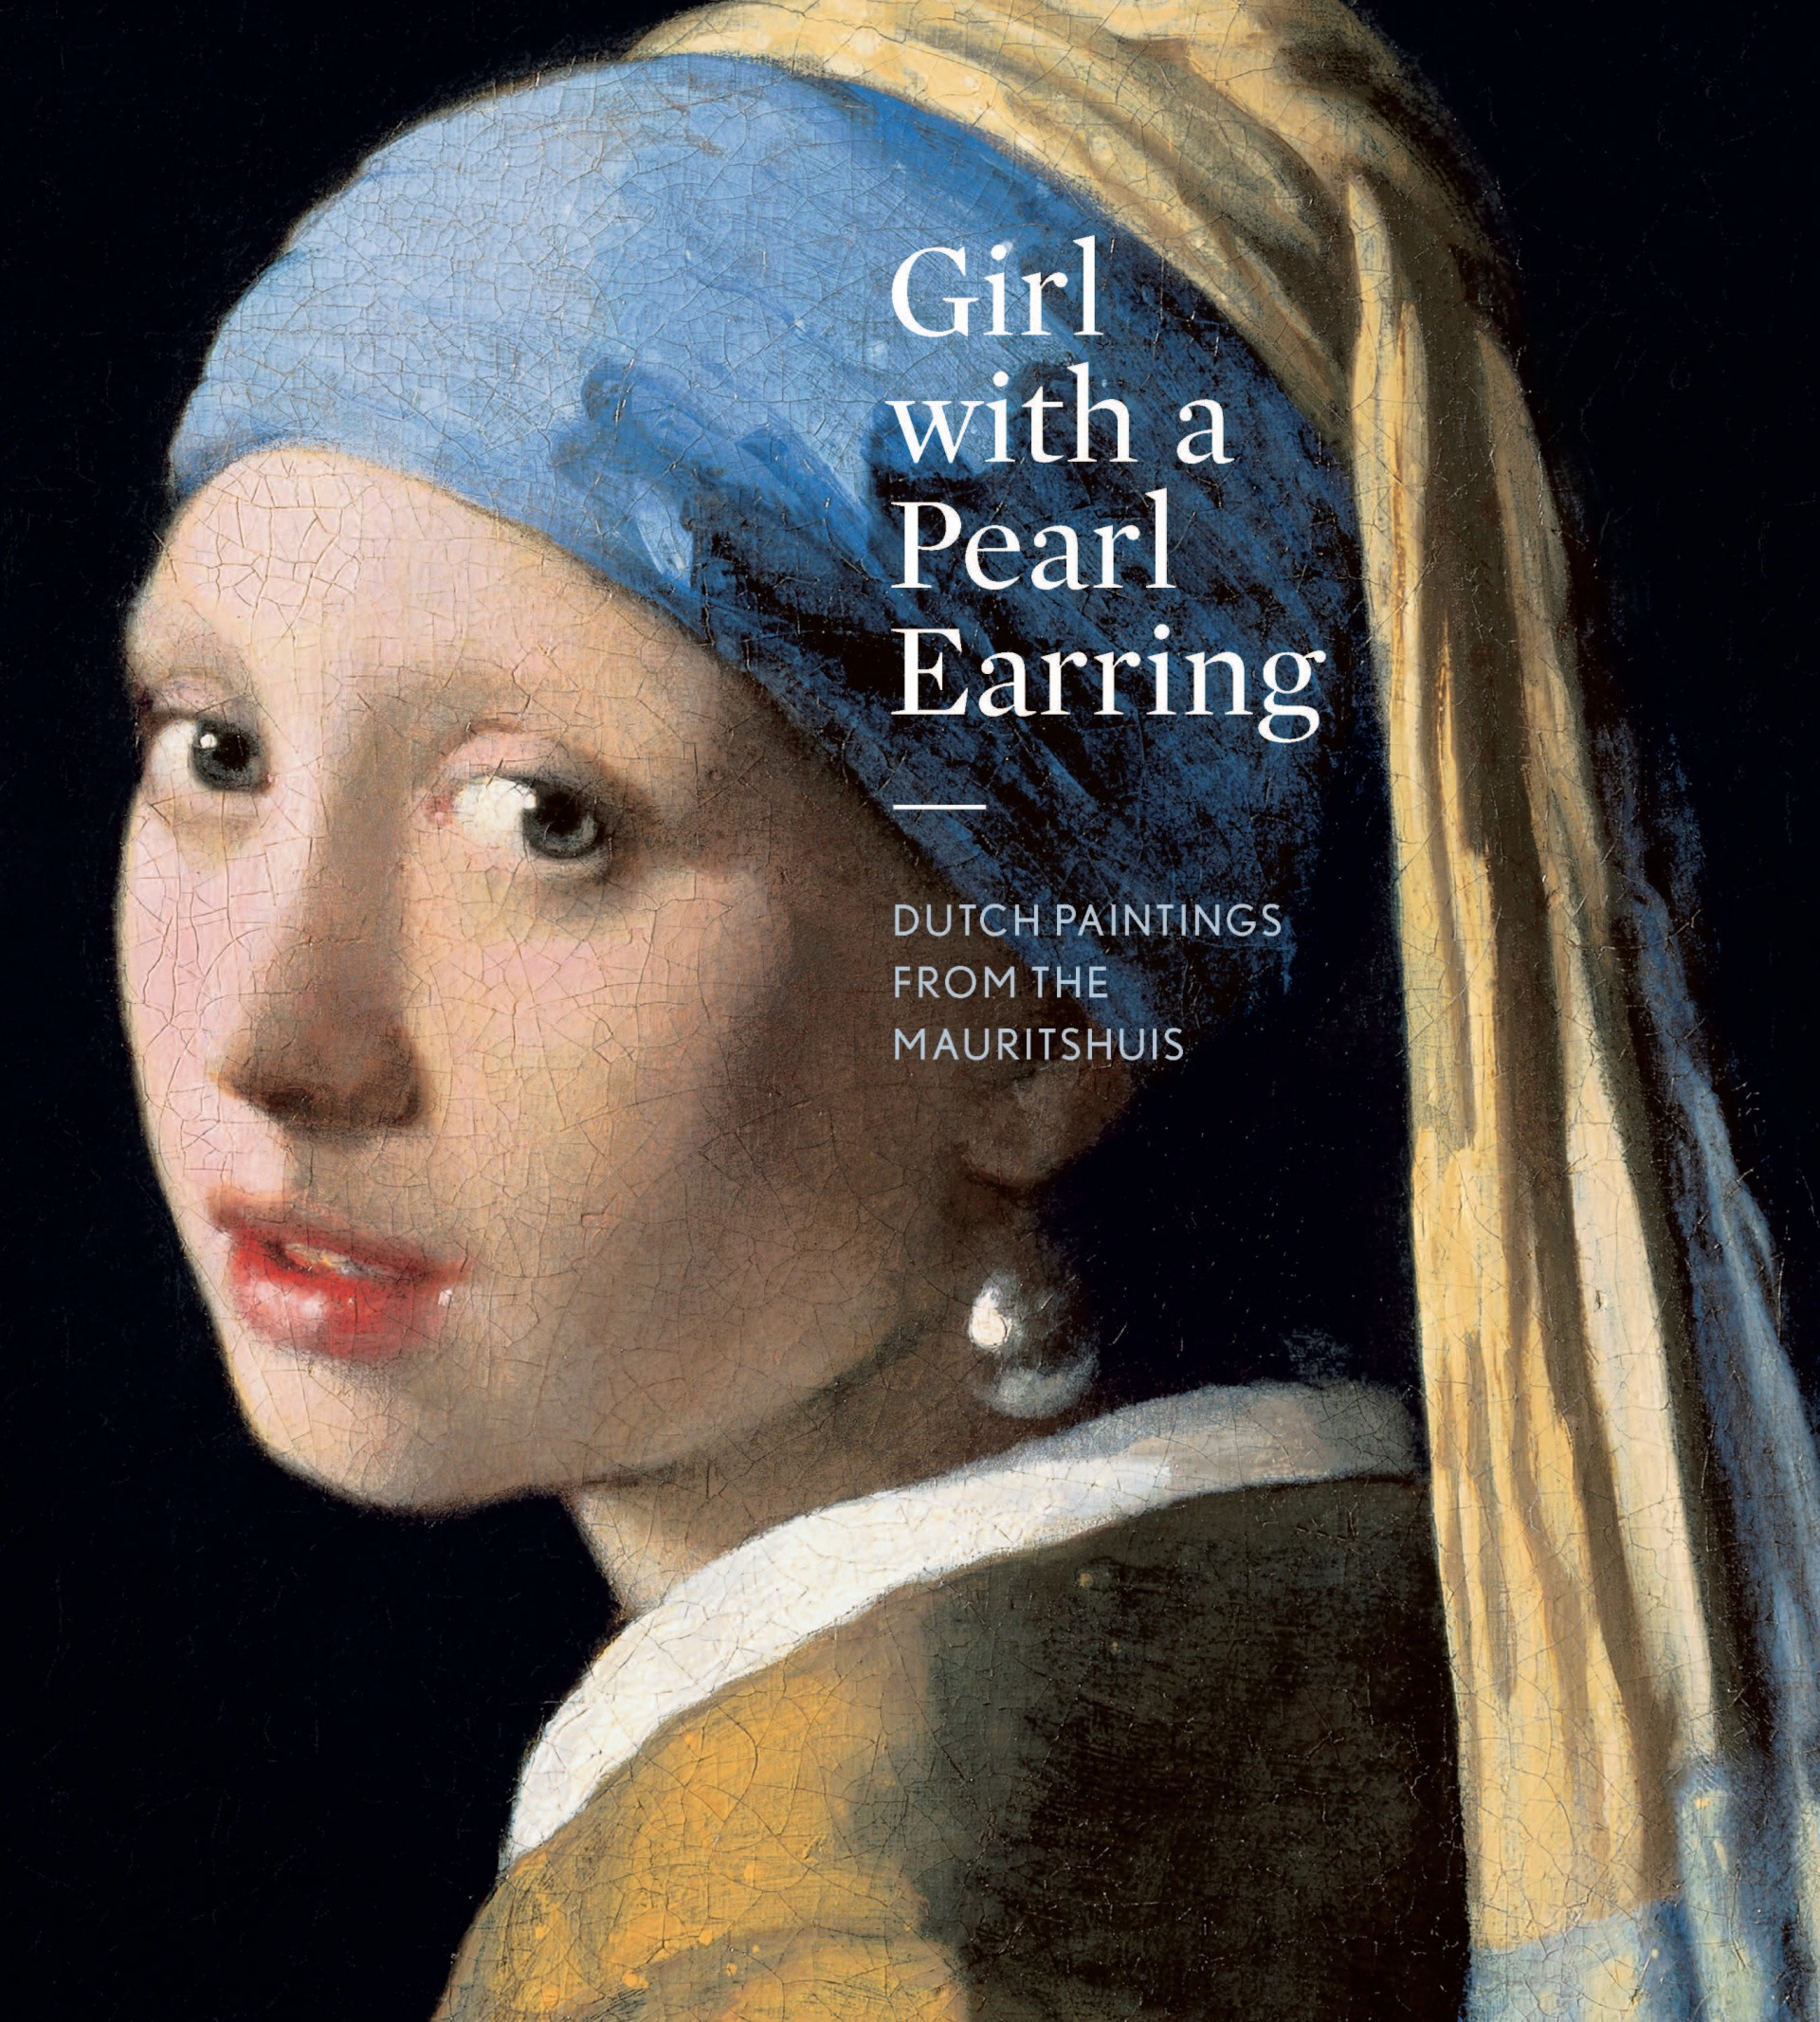 005 Girl With Pearl Earring Essay A 129424 Outstanding The Movie Film Review 1920